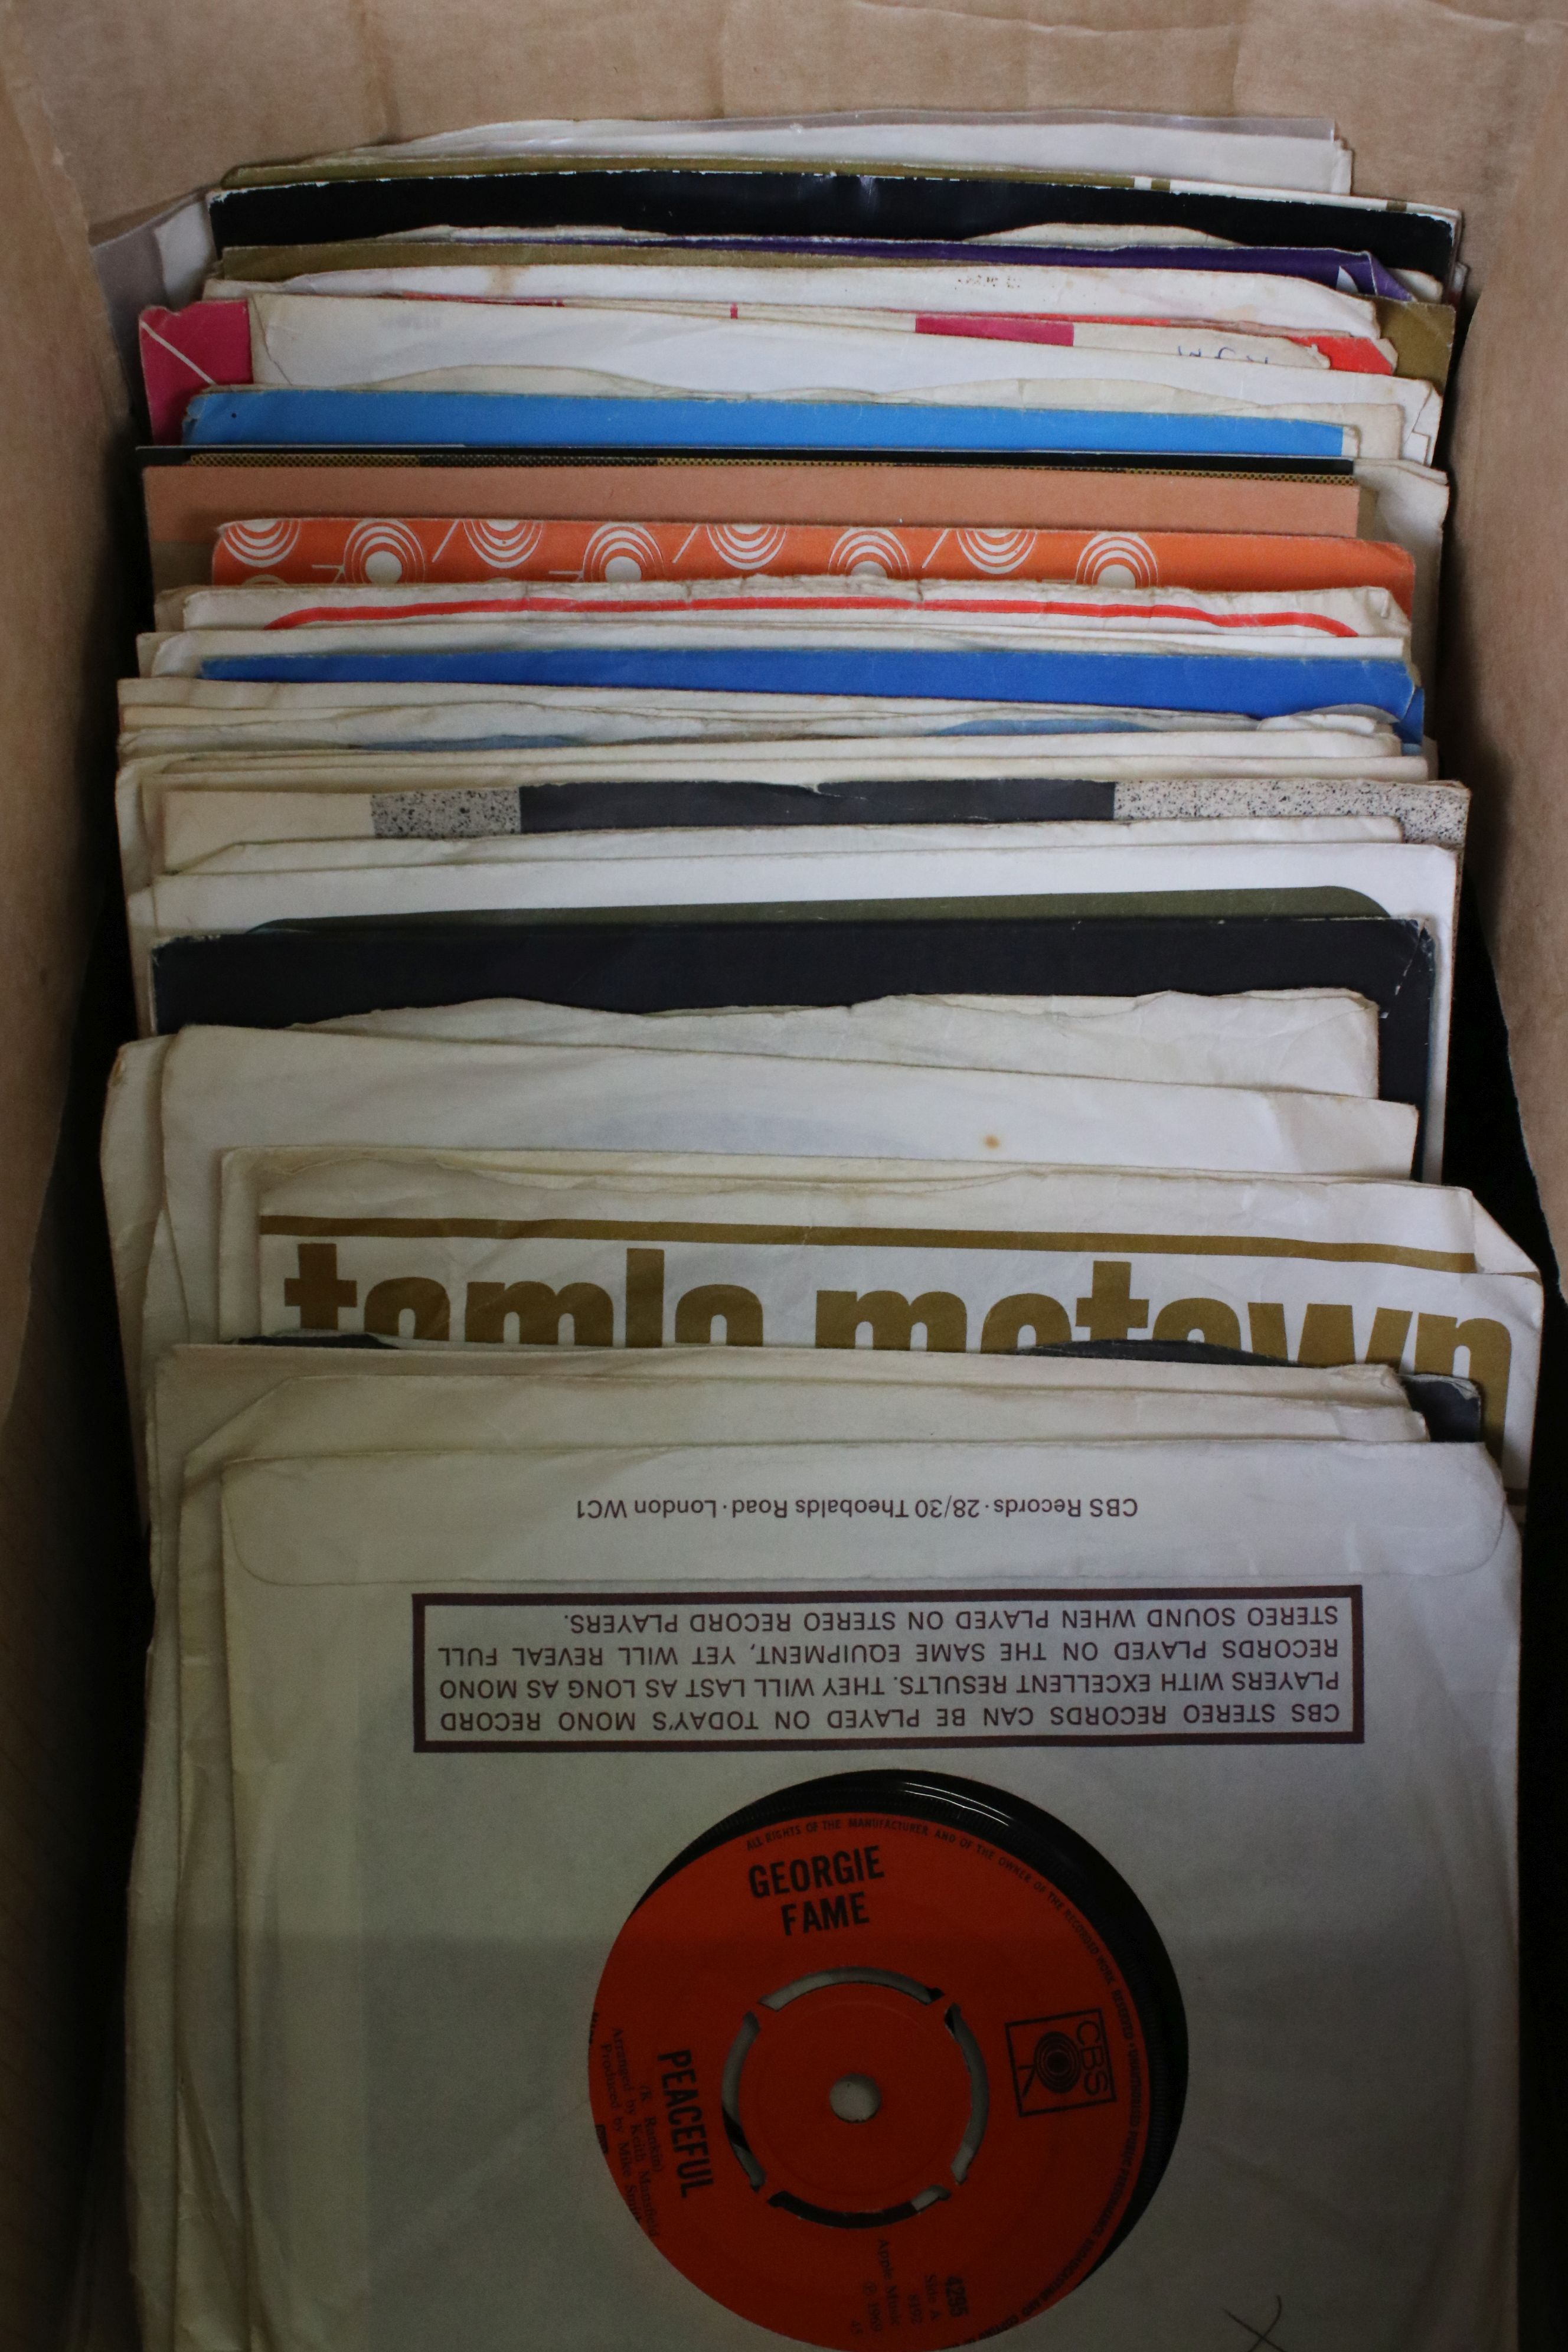 Vinyl - Collection of over 70 45's spanning genres and decades including Fleetwood Mac, Chicken - Image 2 of 15